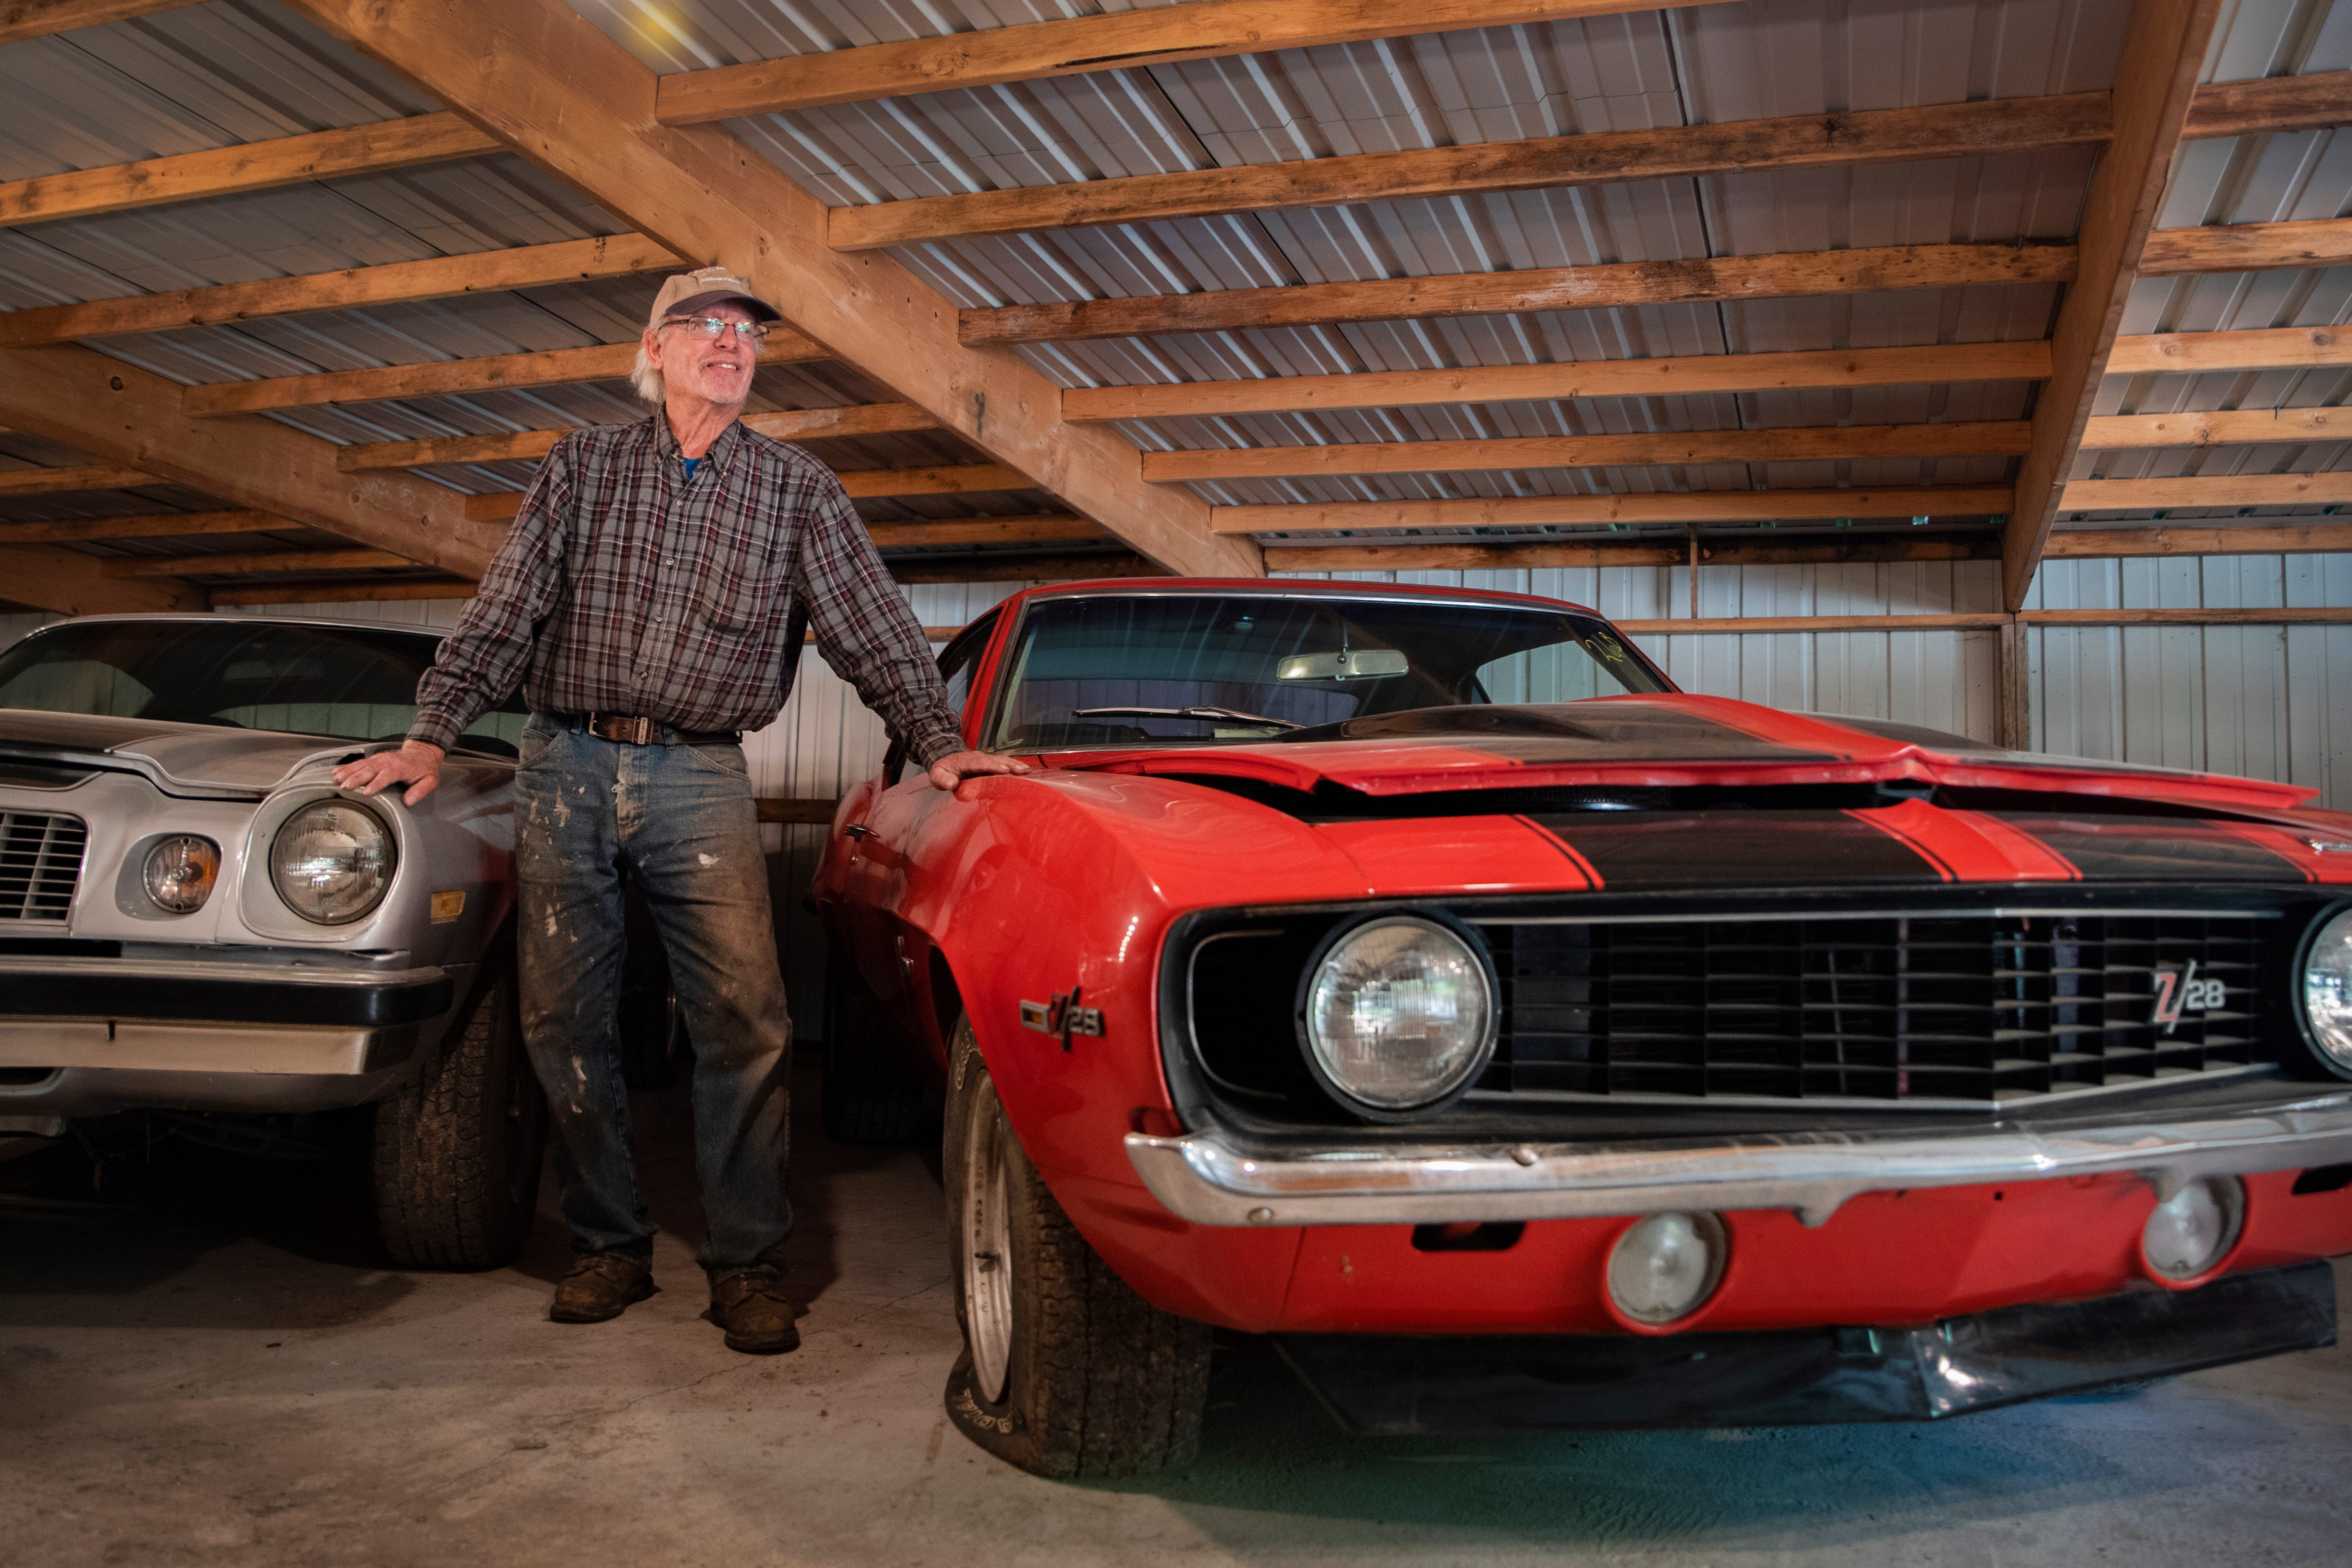 Watch: How Iowan Coyote Johnson built his massive muscle car collection